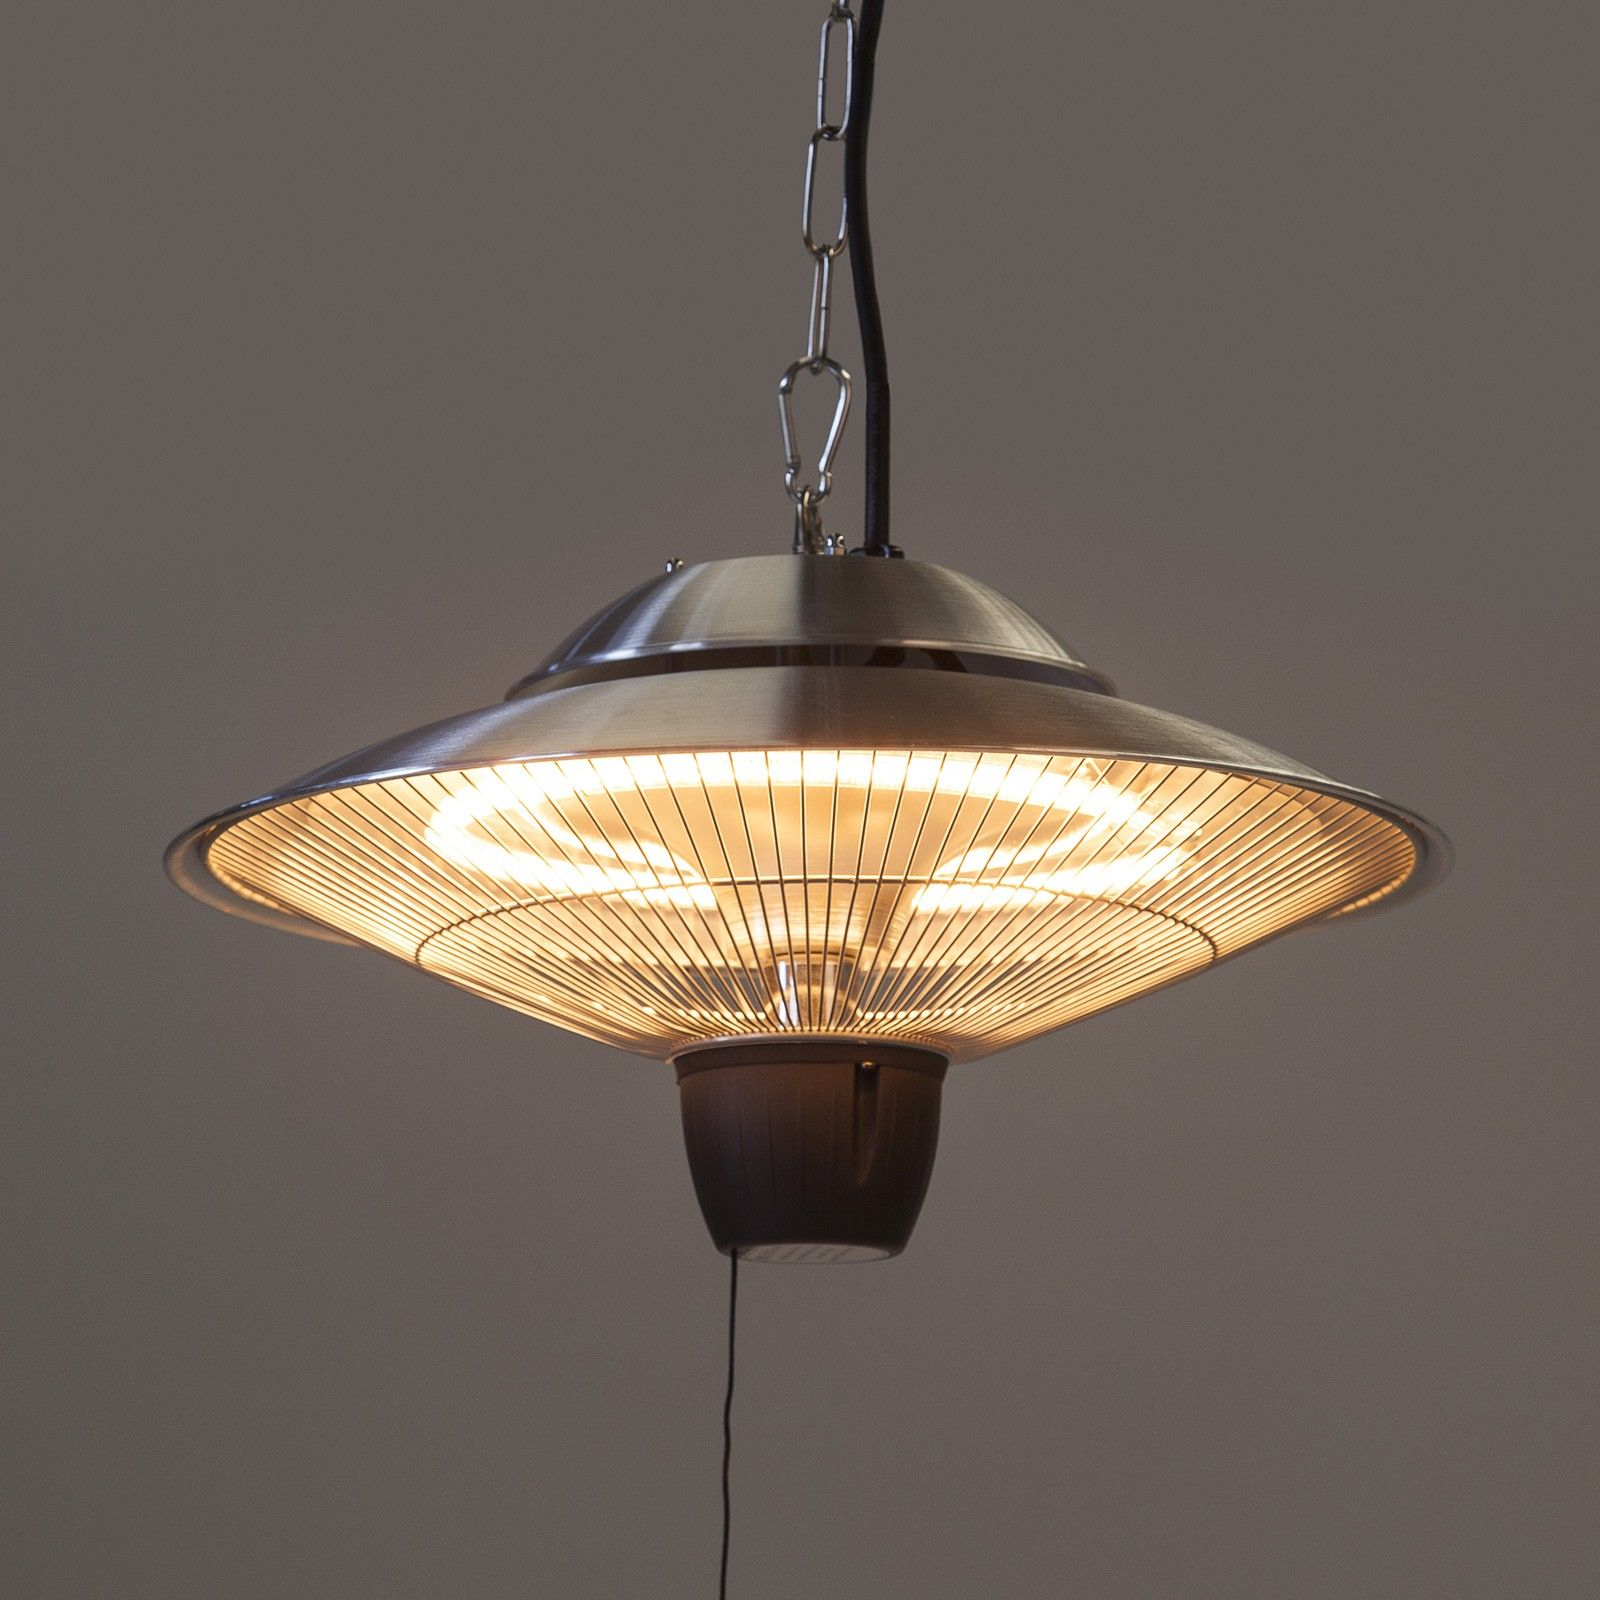 Ceiling Electric Patio Heaters in 2019 Patio heater